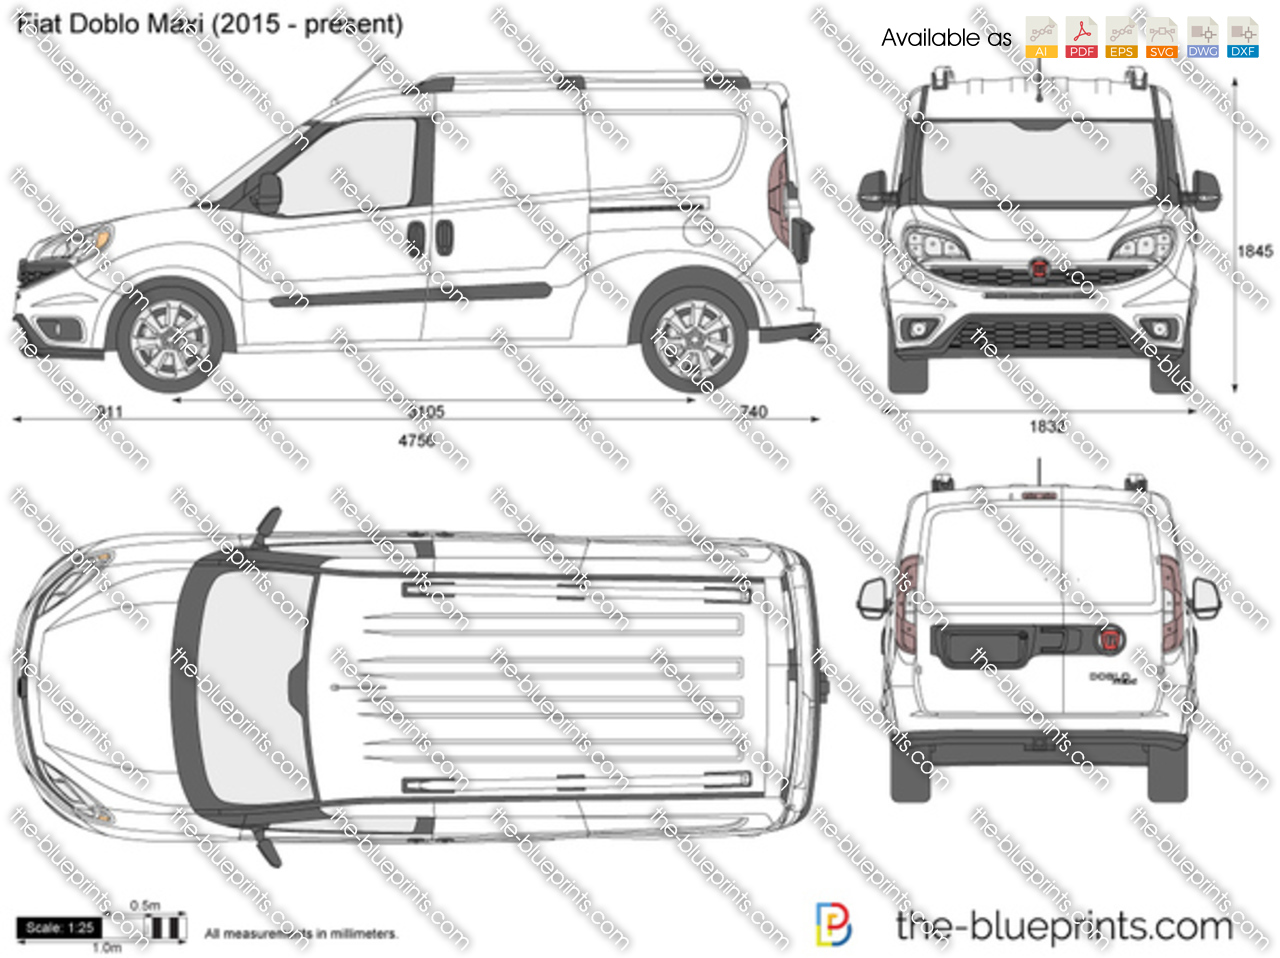 fiat doblo lwb maxi vector drawing. Black Bedroom Furniture Sets. Home Design Ideas